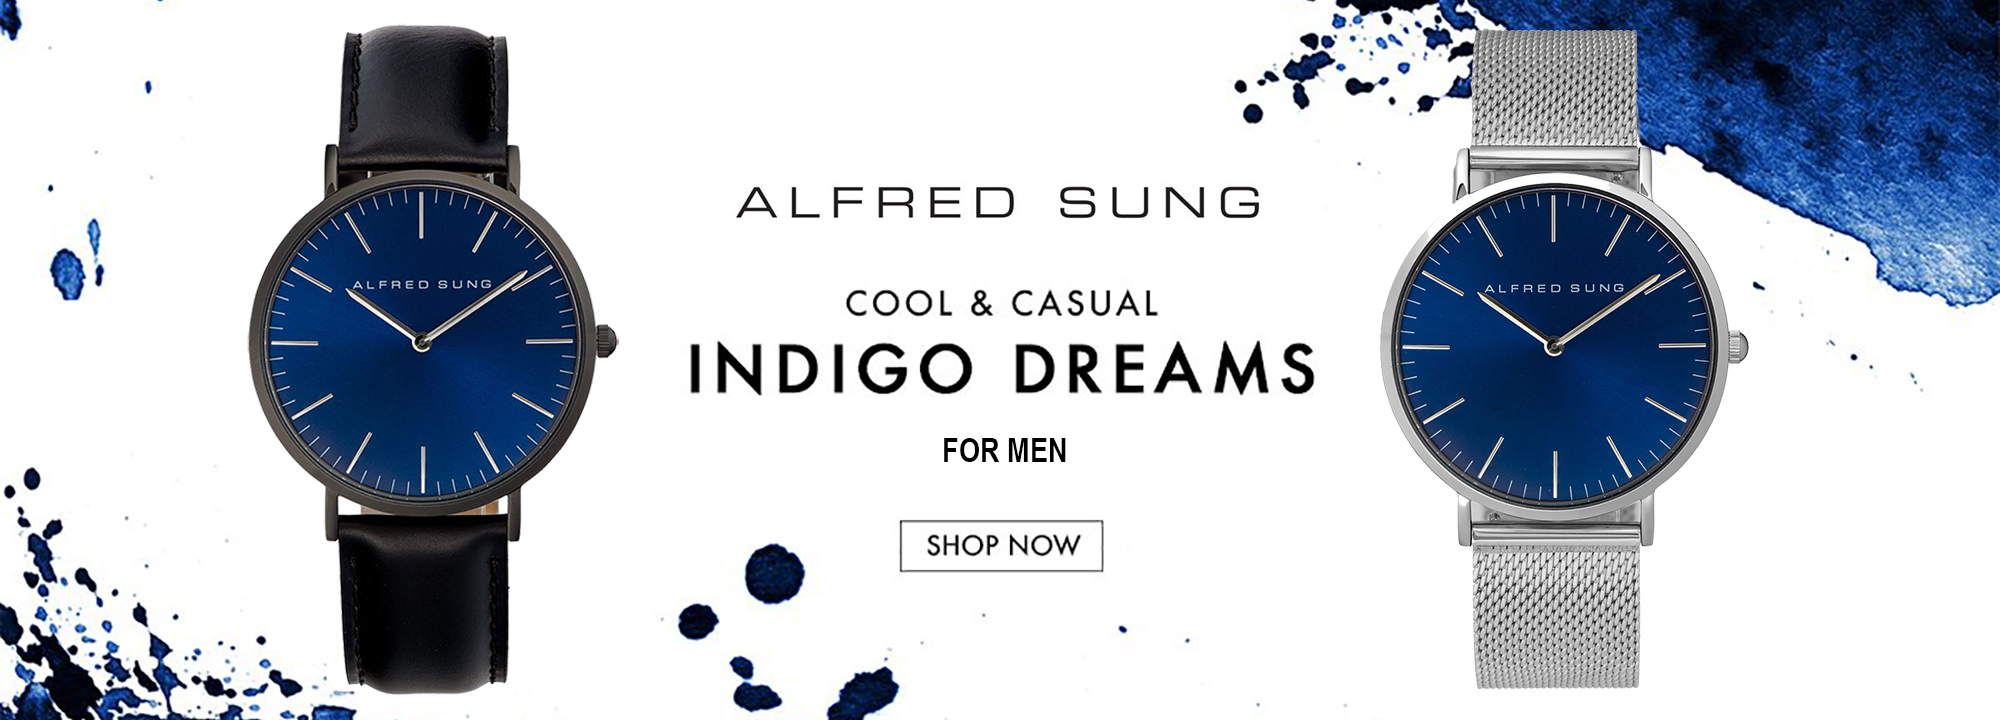 Alfred Sung Watches